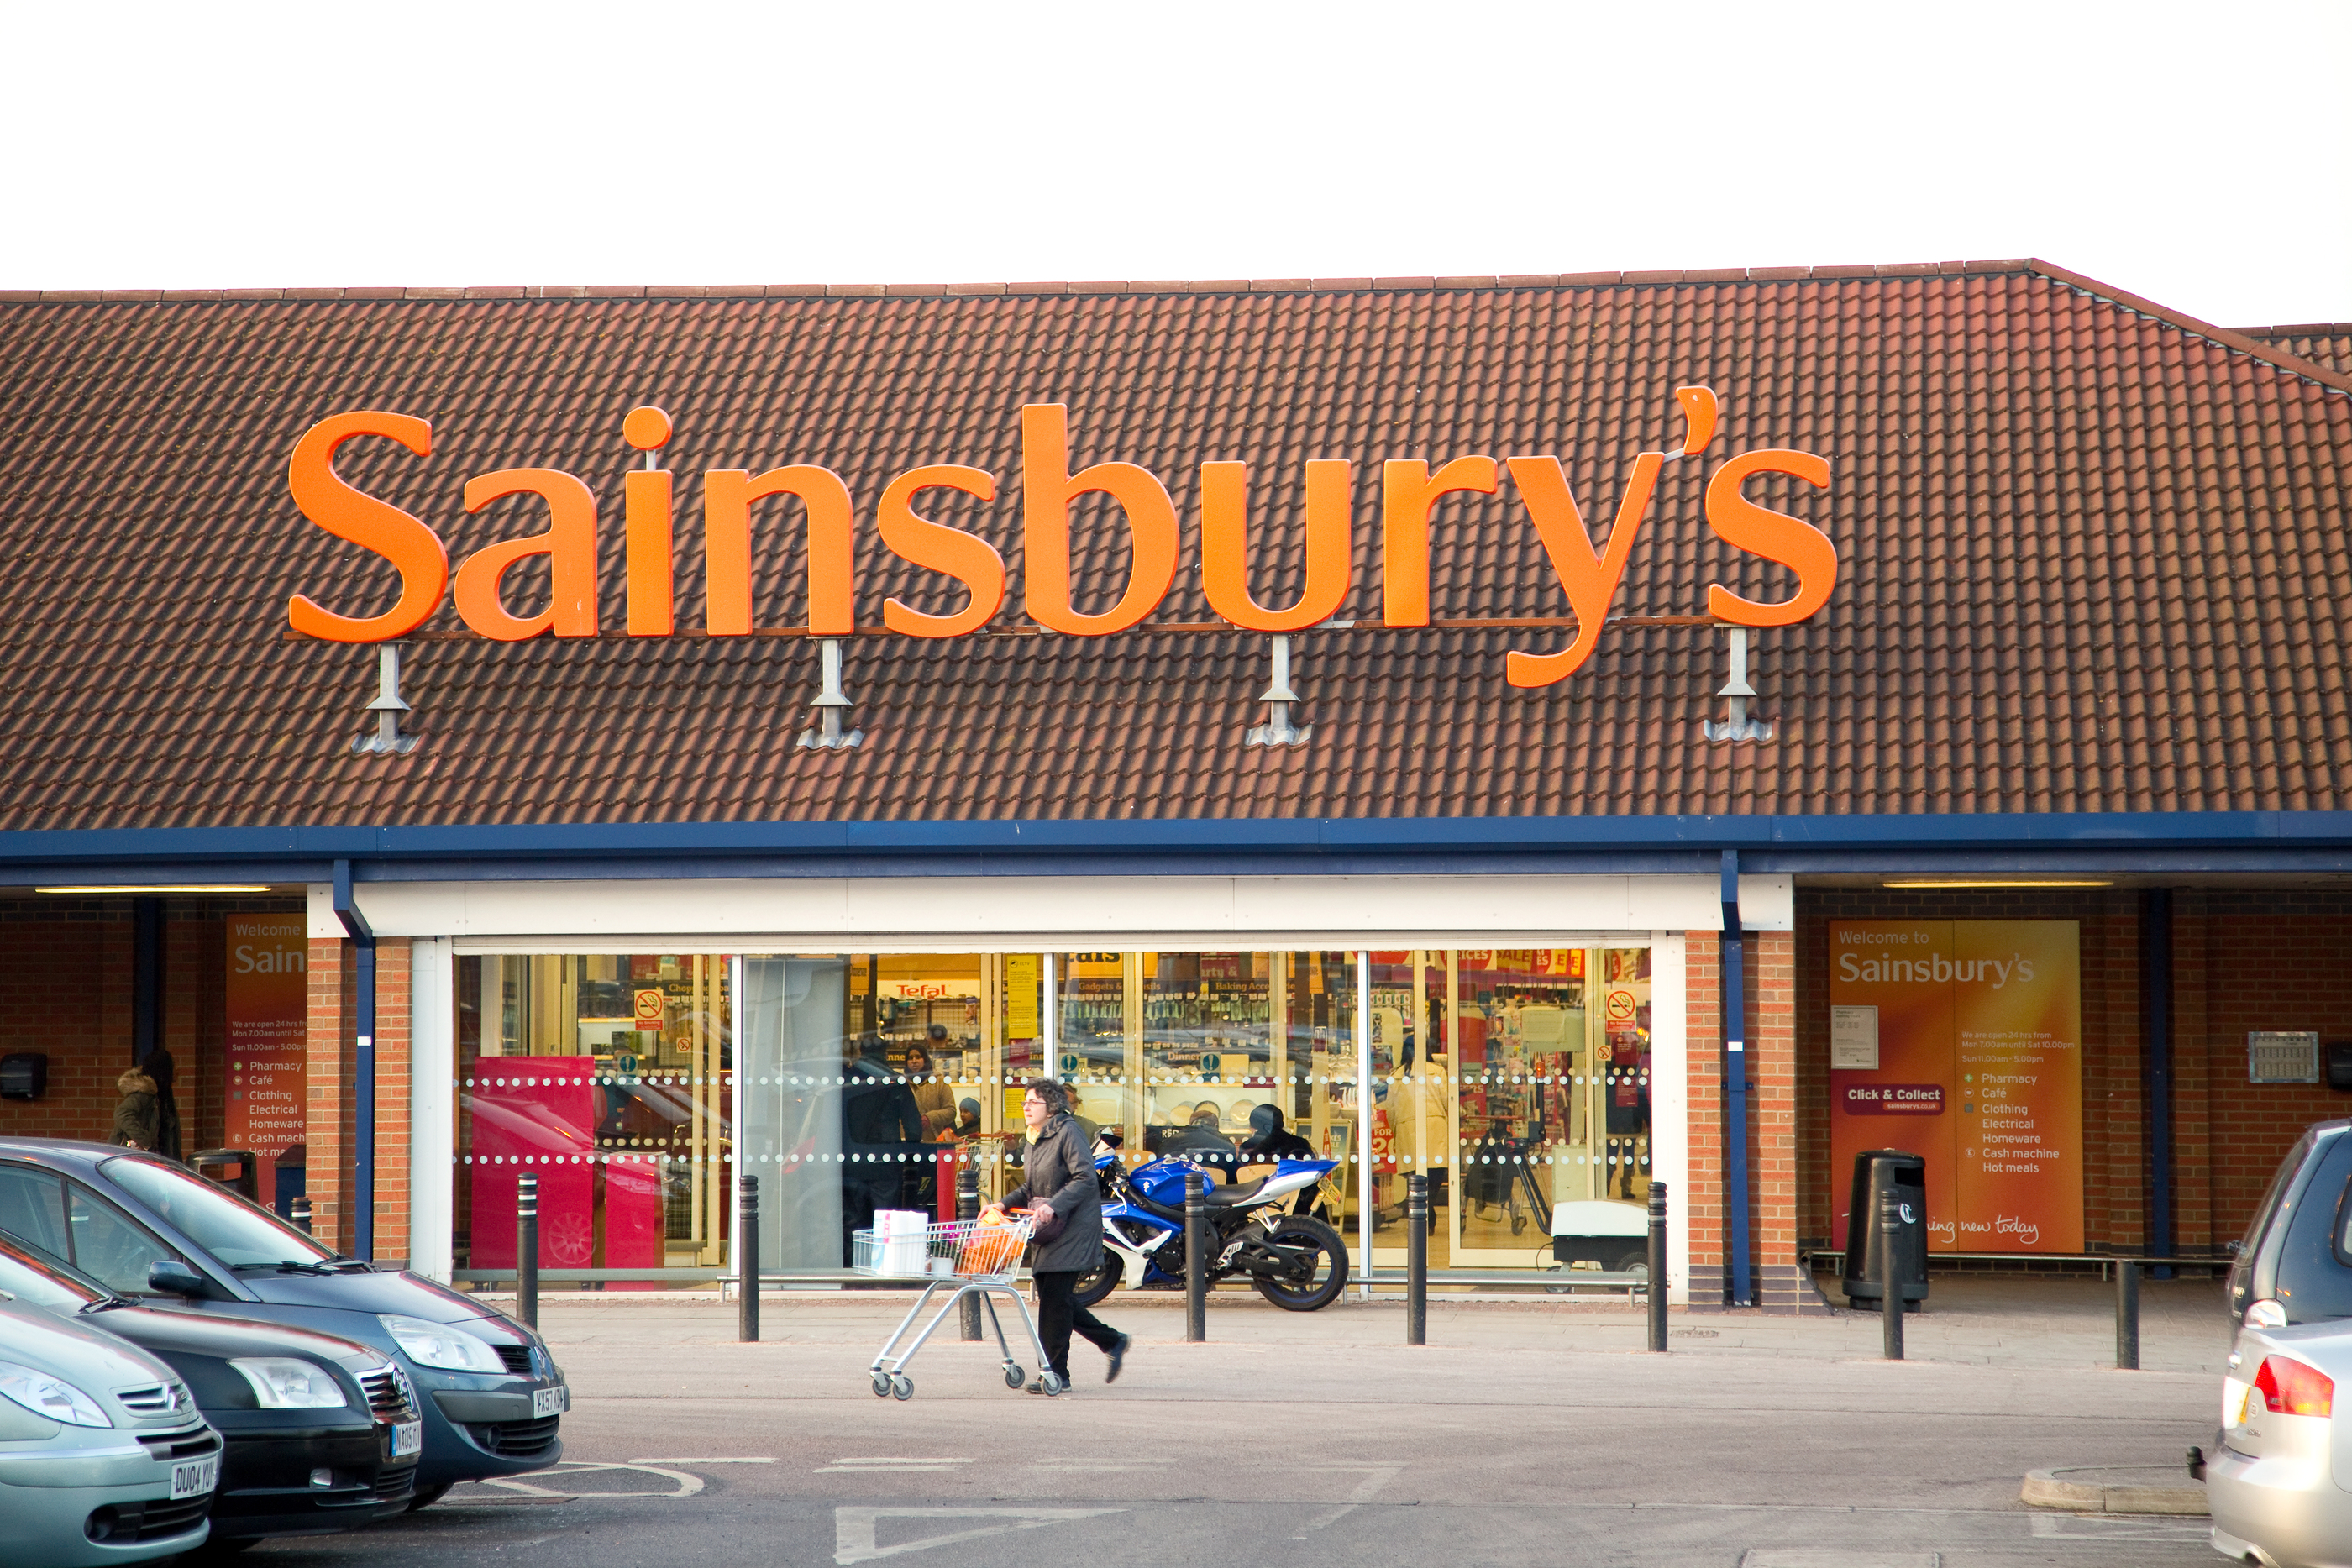 Sainsbury's Launches Weather-Responsive LED Electronic Billboards